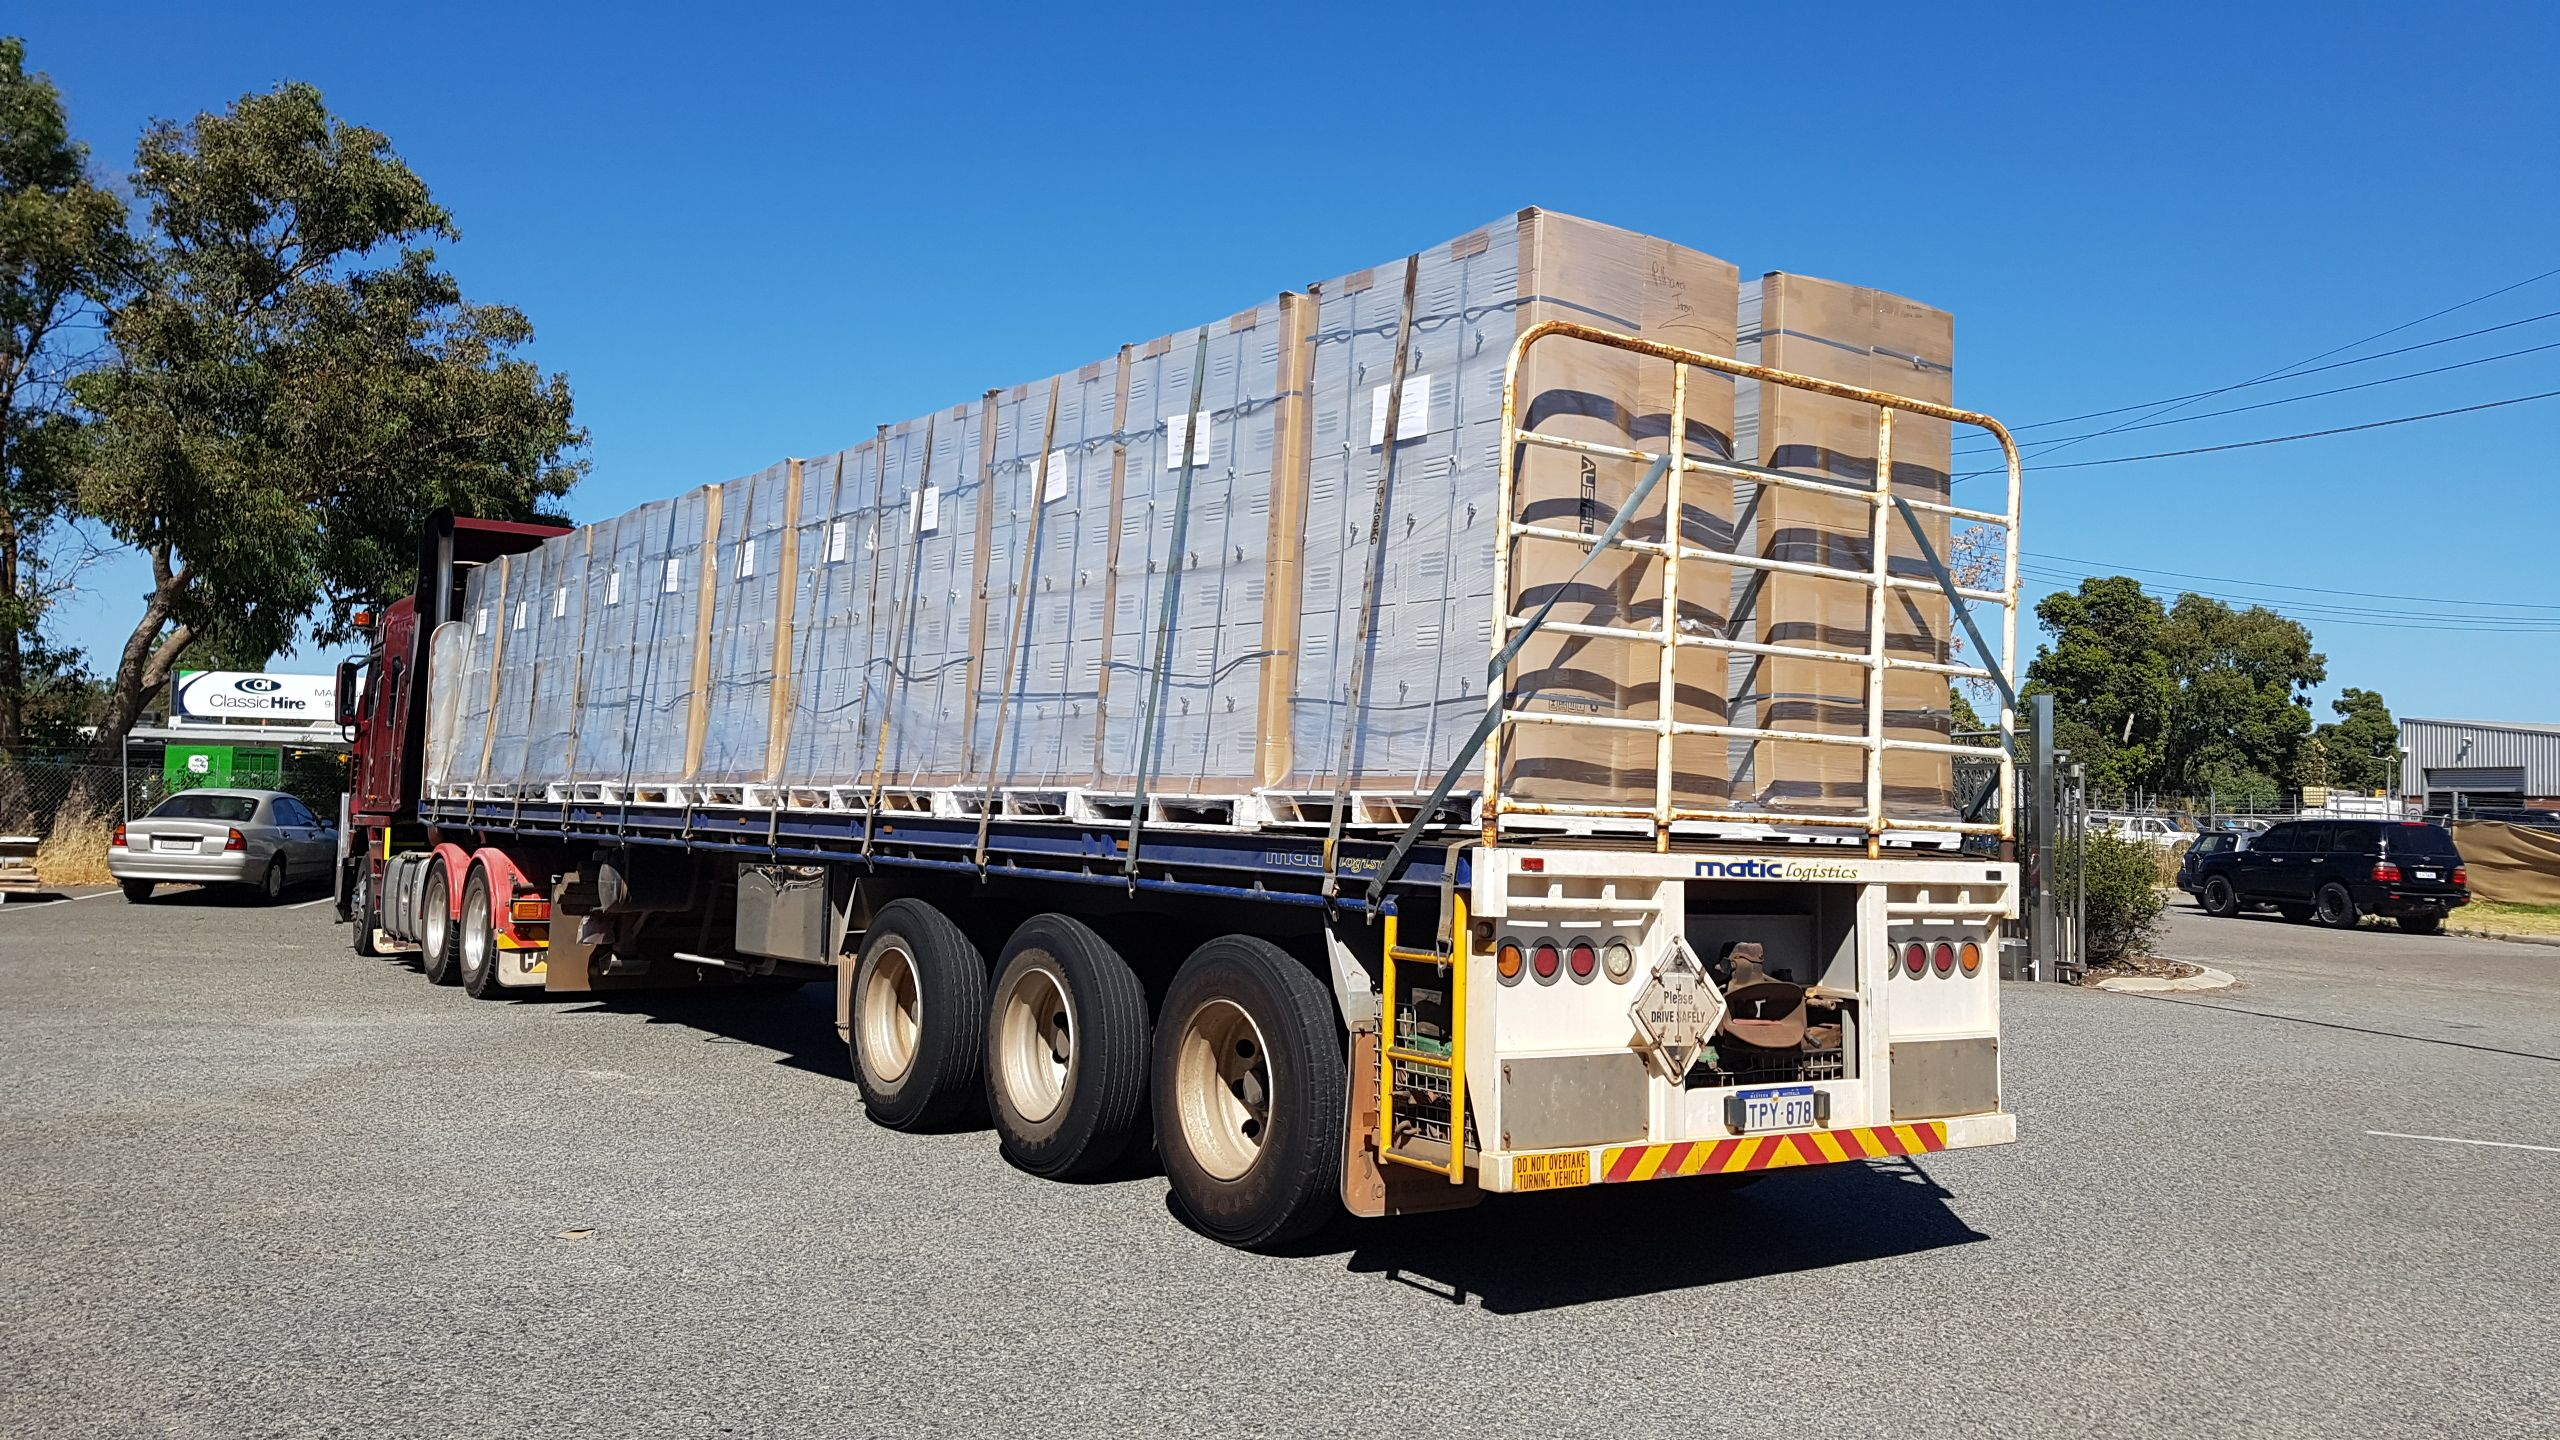 More Lockers heading up to the North West @Rio #mining @Access